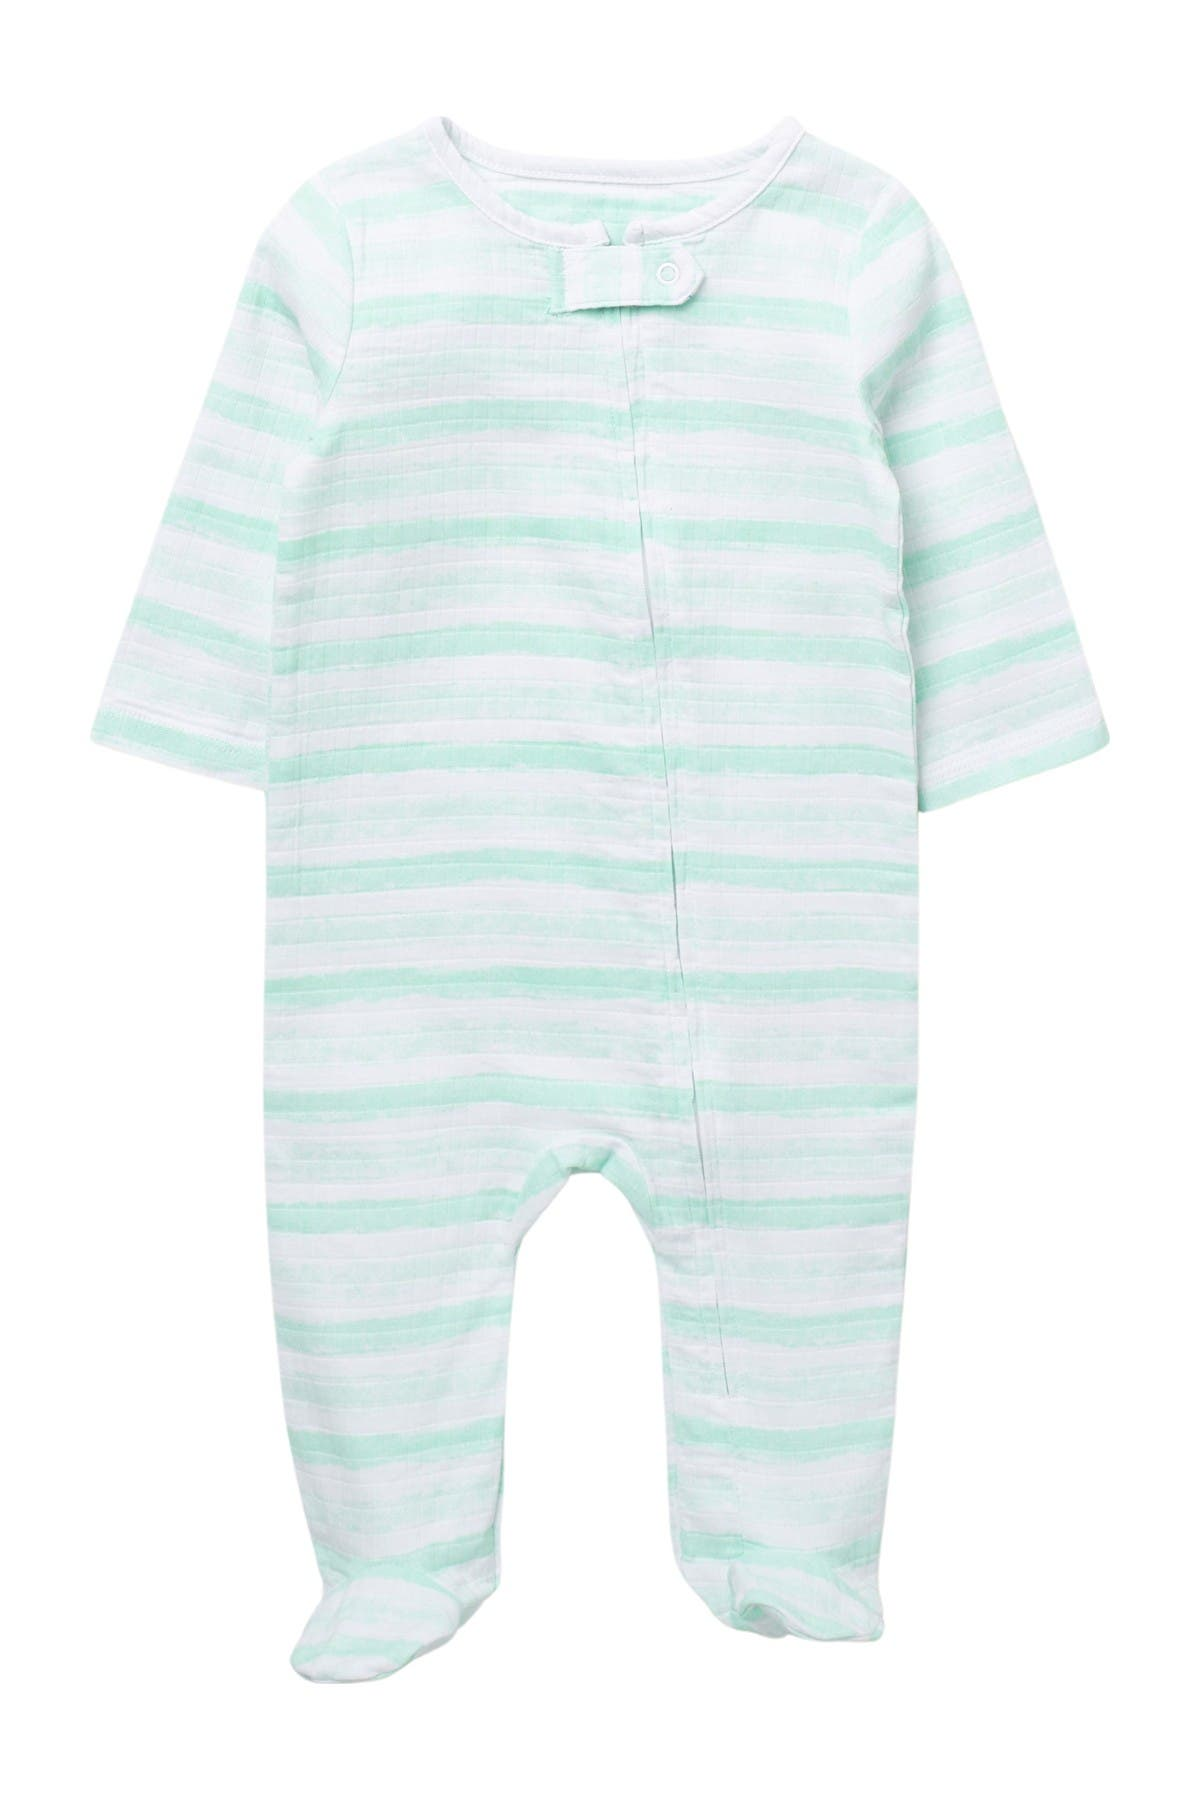 Image of aden + anais Long Sleeve One-Piece Coverall